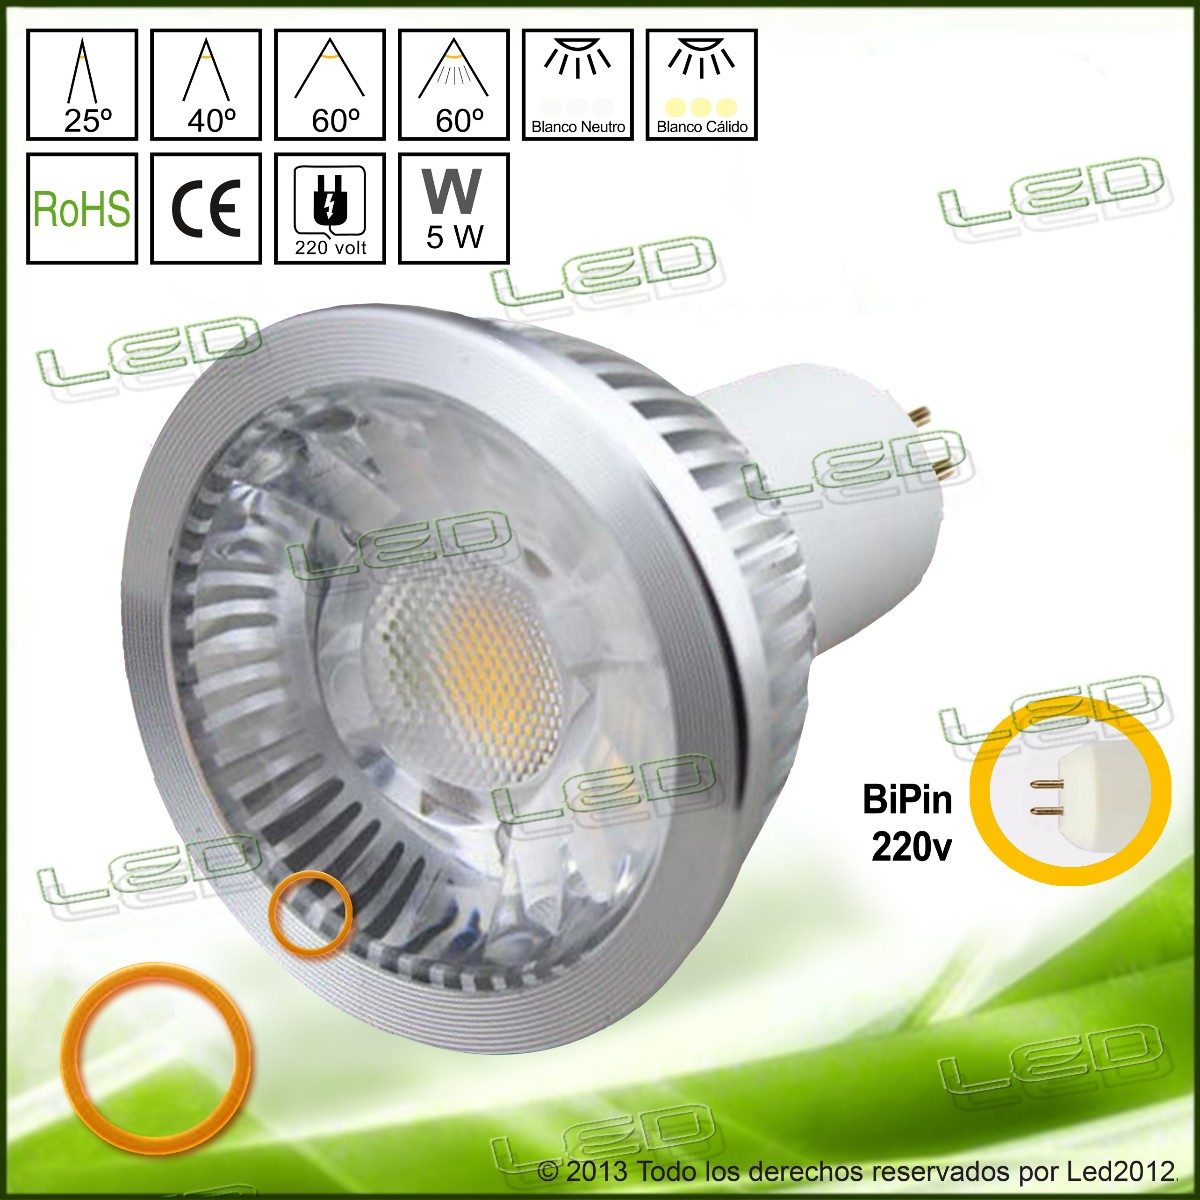 Lamparas Led 220 Lámpara Dicroica Led 5 Watt Alta Luminosidad 220 Volt